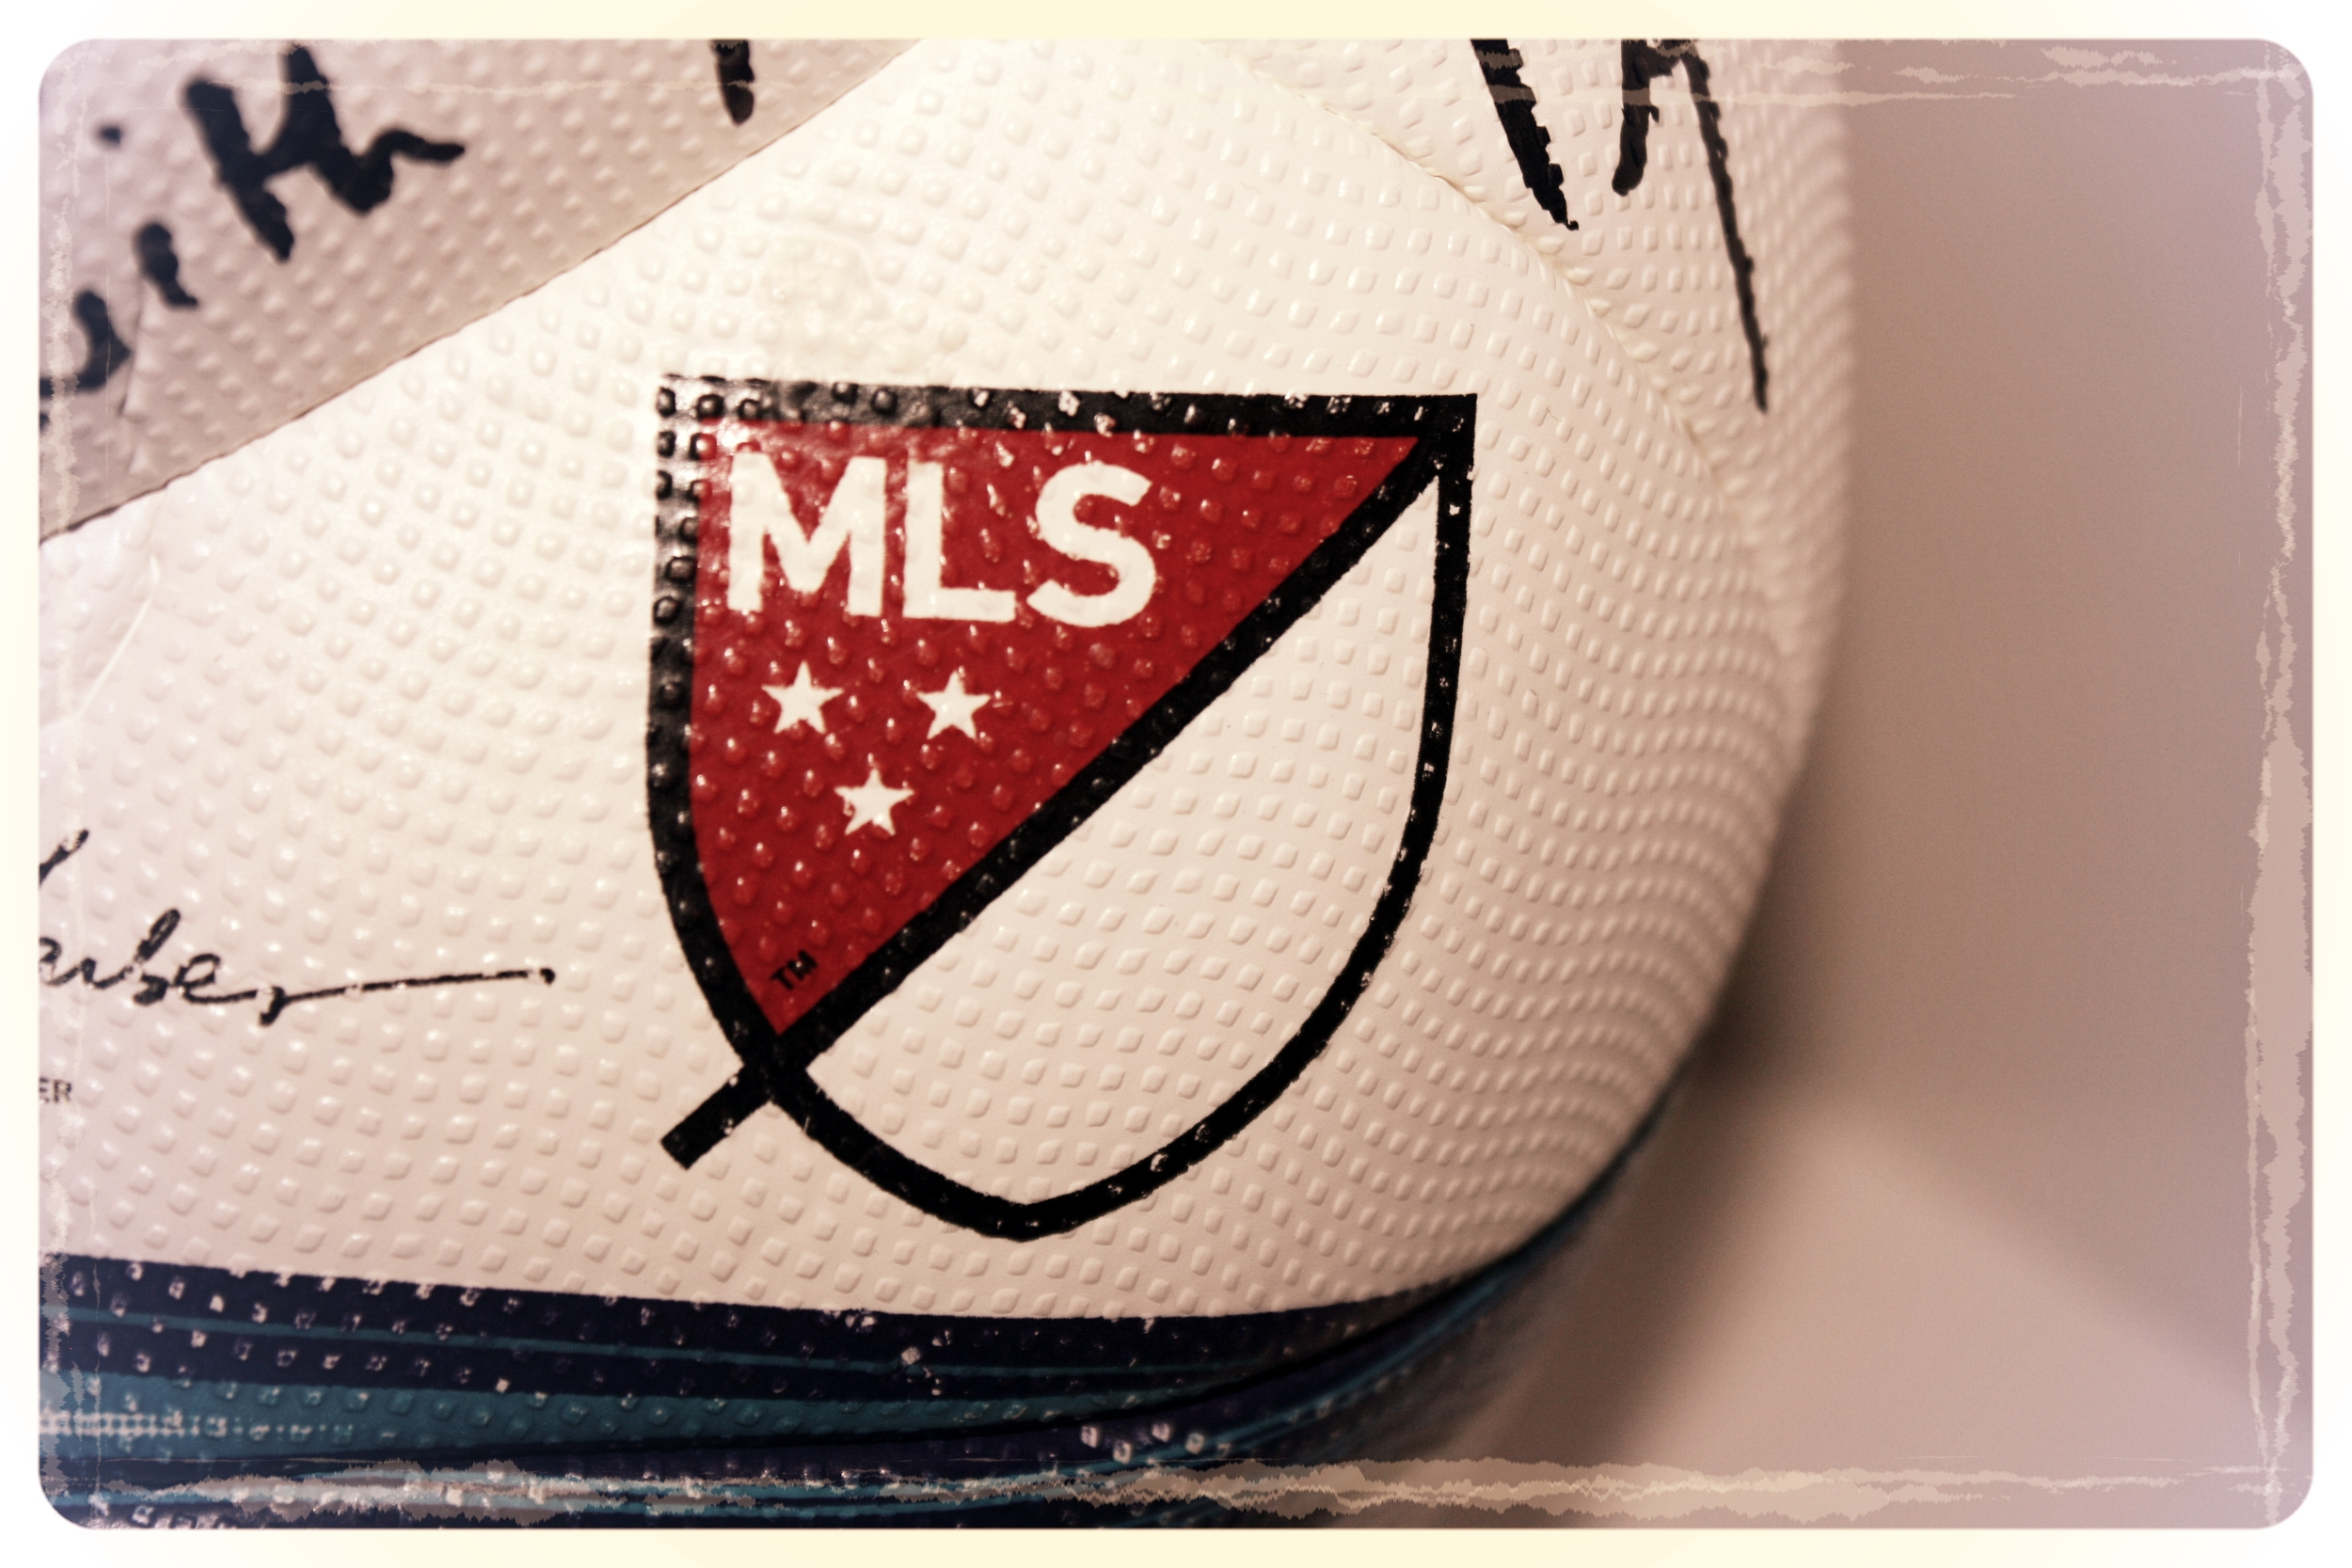 mls logo on ball.JPG